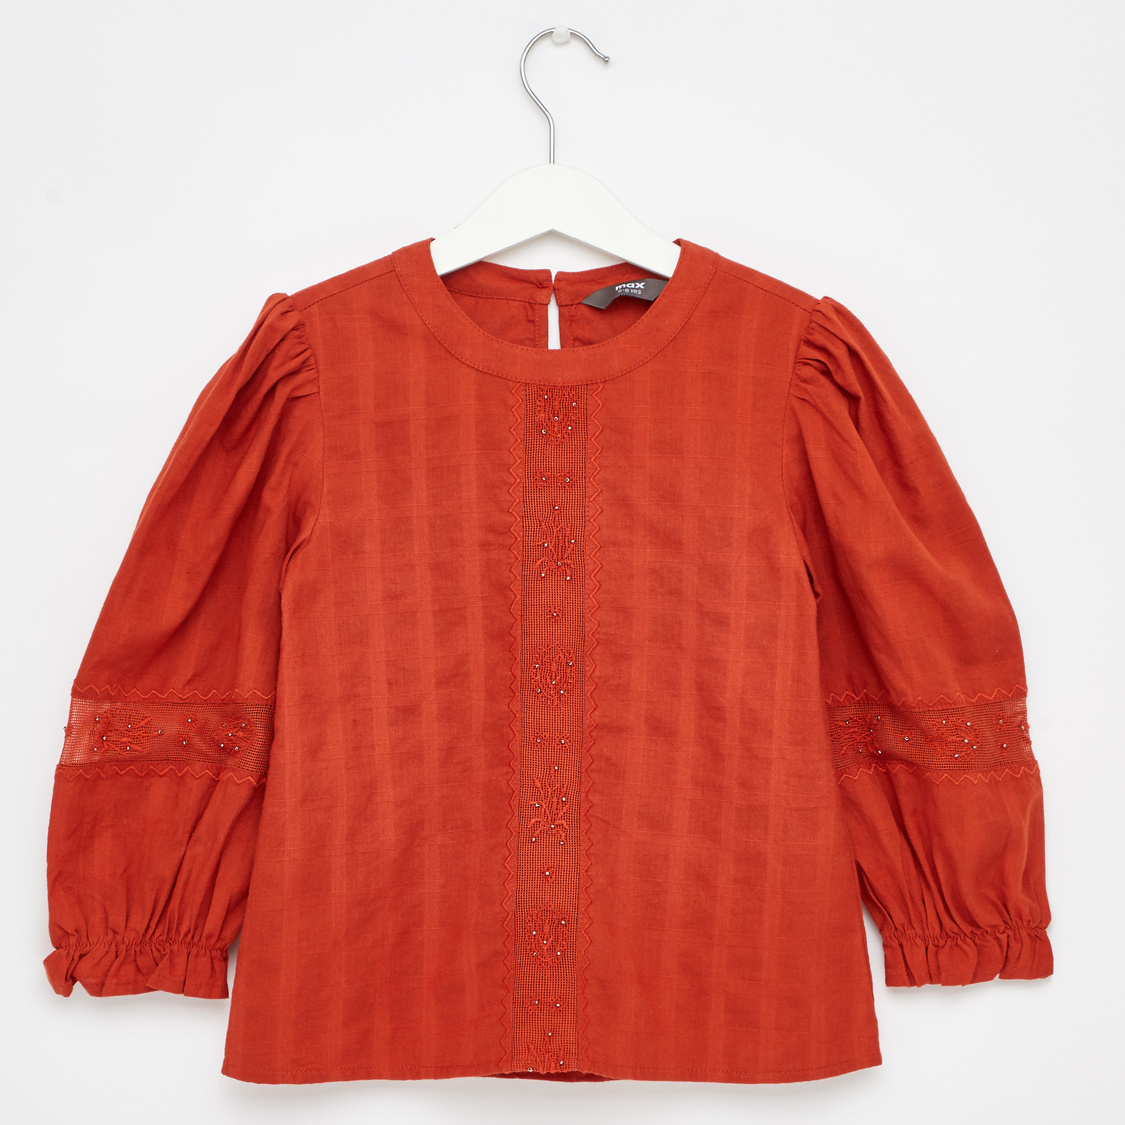 Textured Round Neck Button Back Top with Long Sleeves